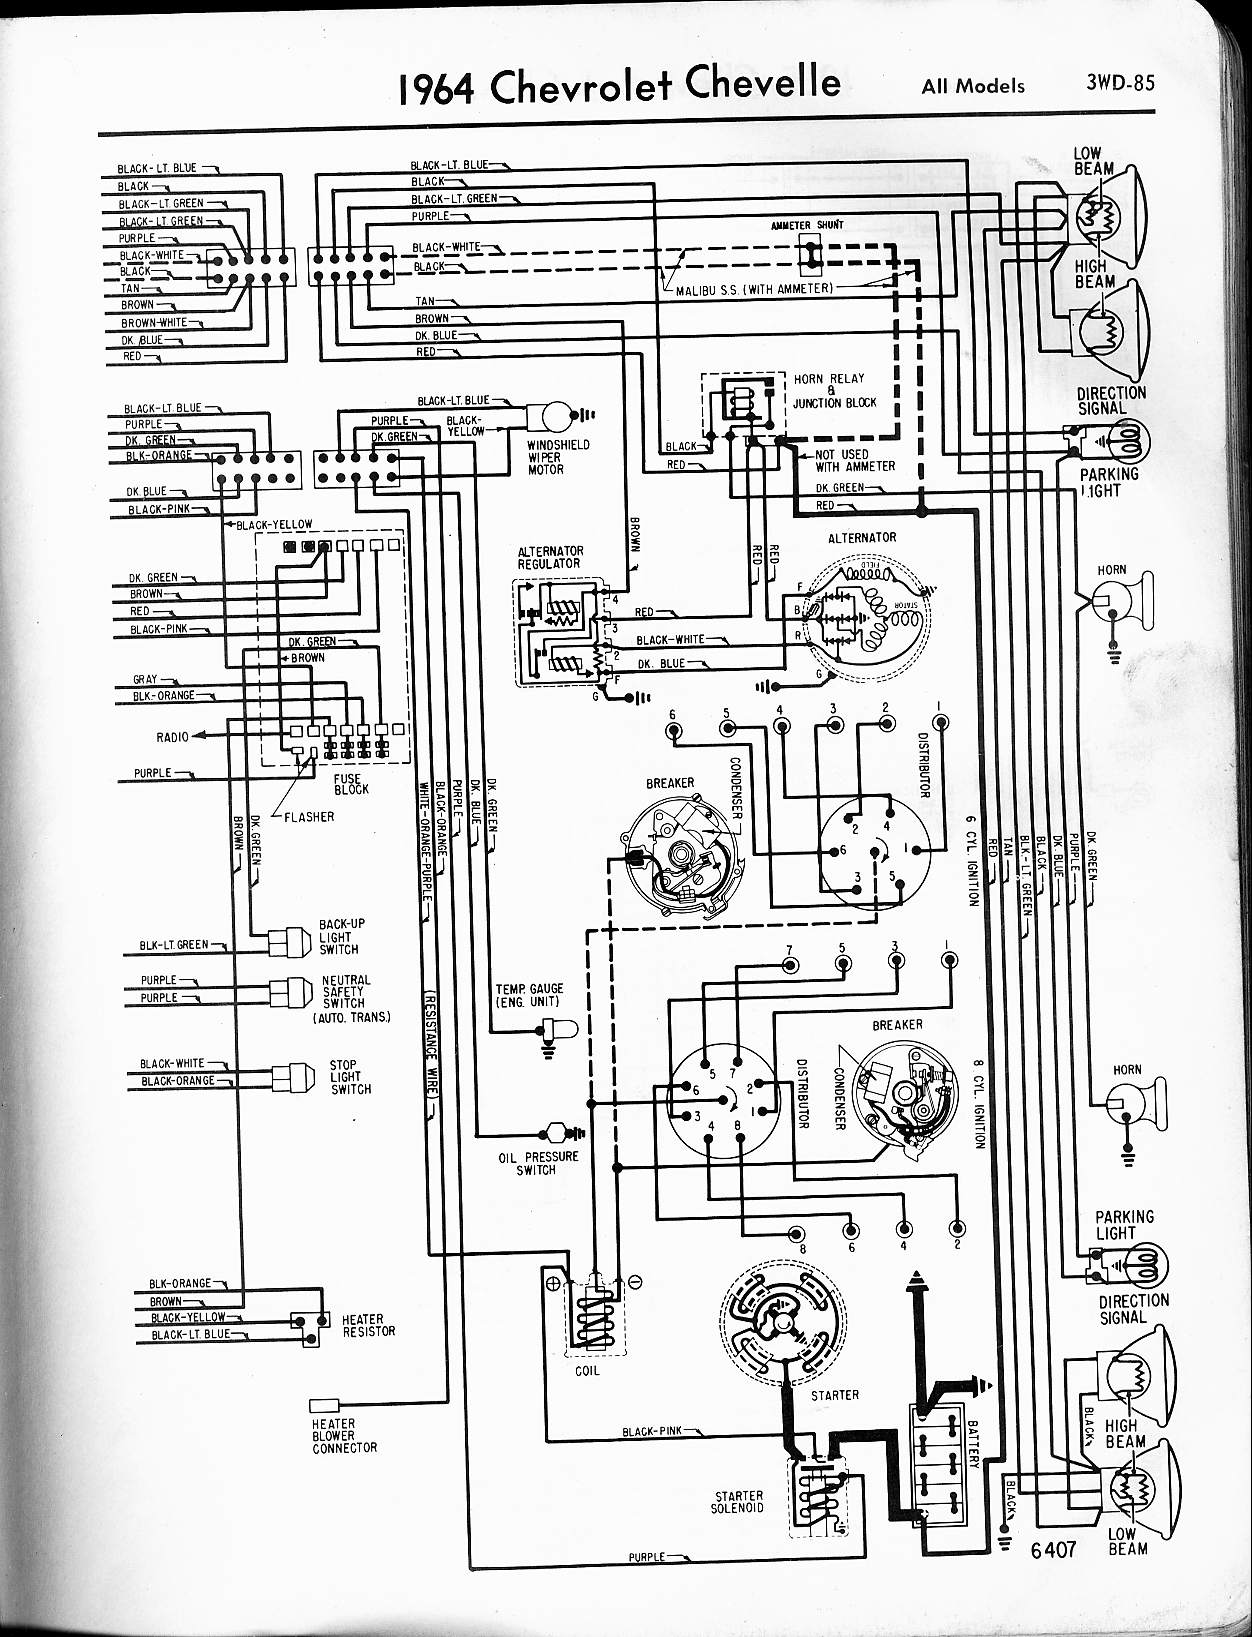 hight resolution of 65 el camino wiring diagram wiring library rh 93 codingcommunity de 1984 el camino fuse box 1987 el camino fuse box diagram